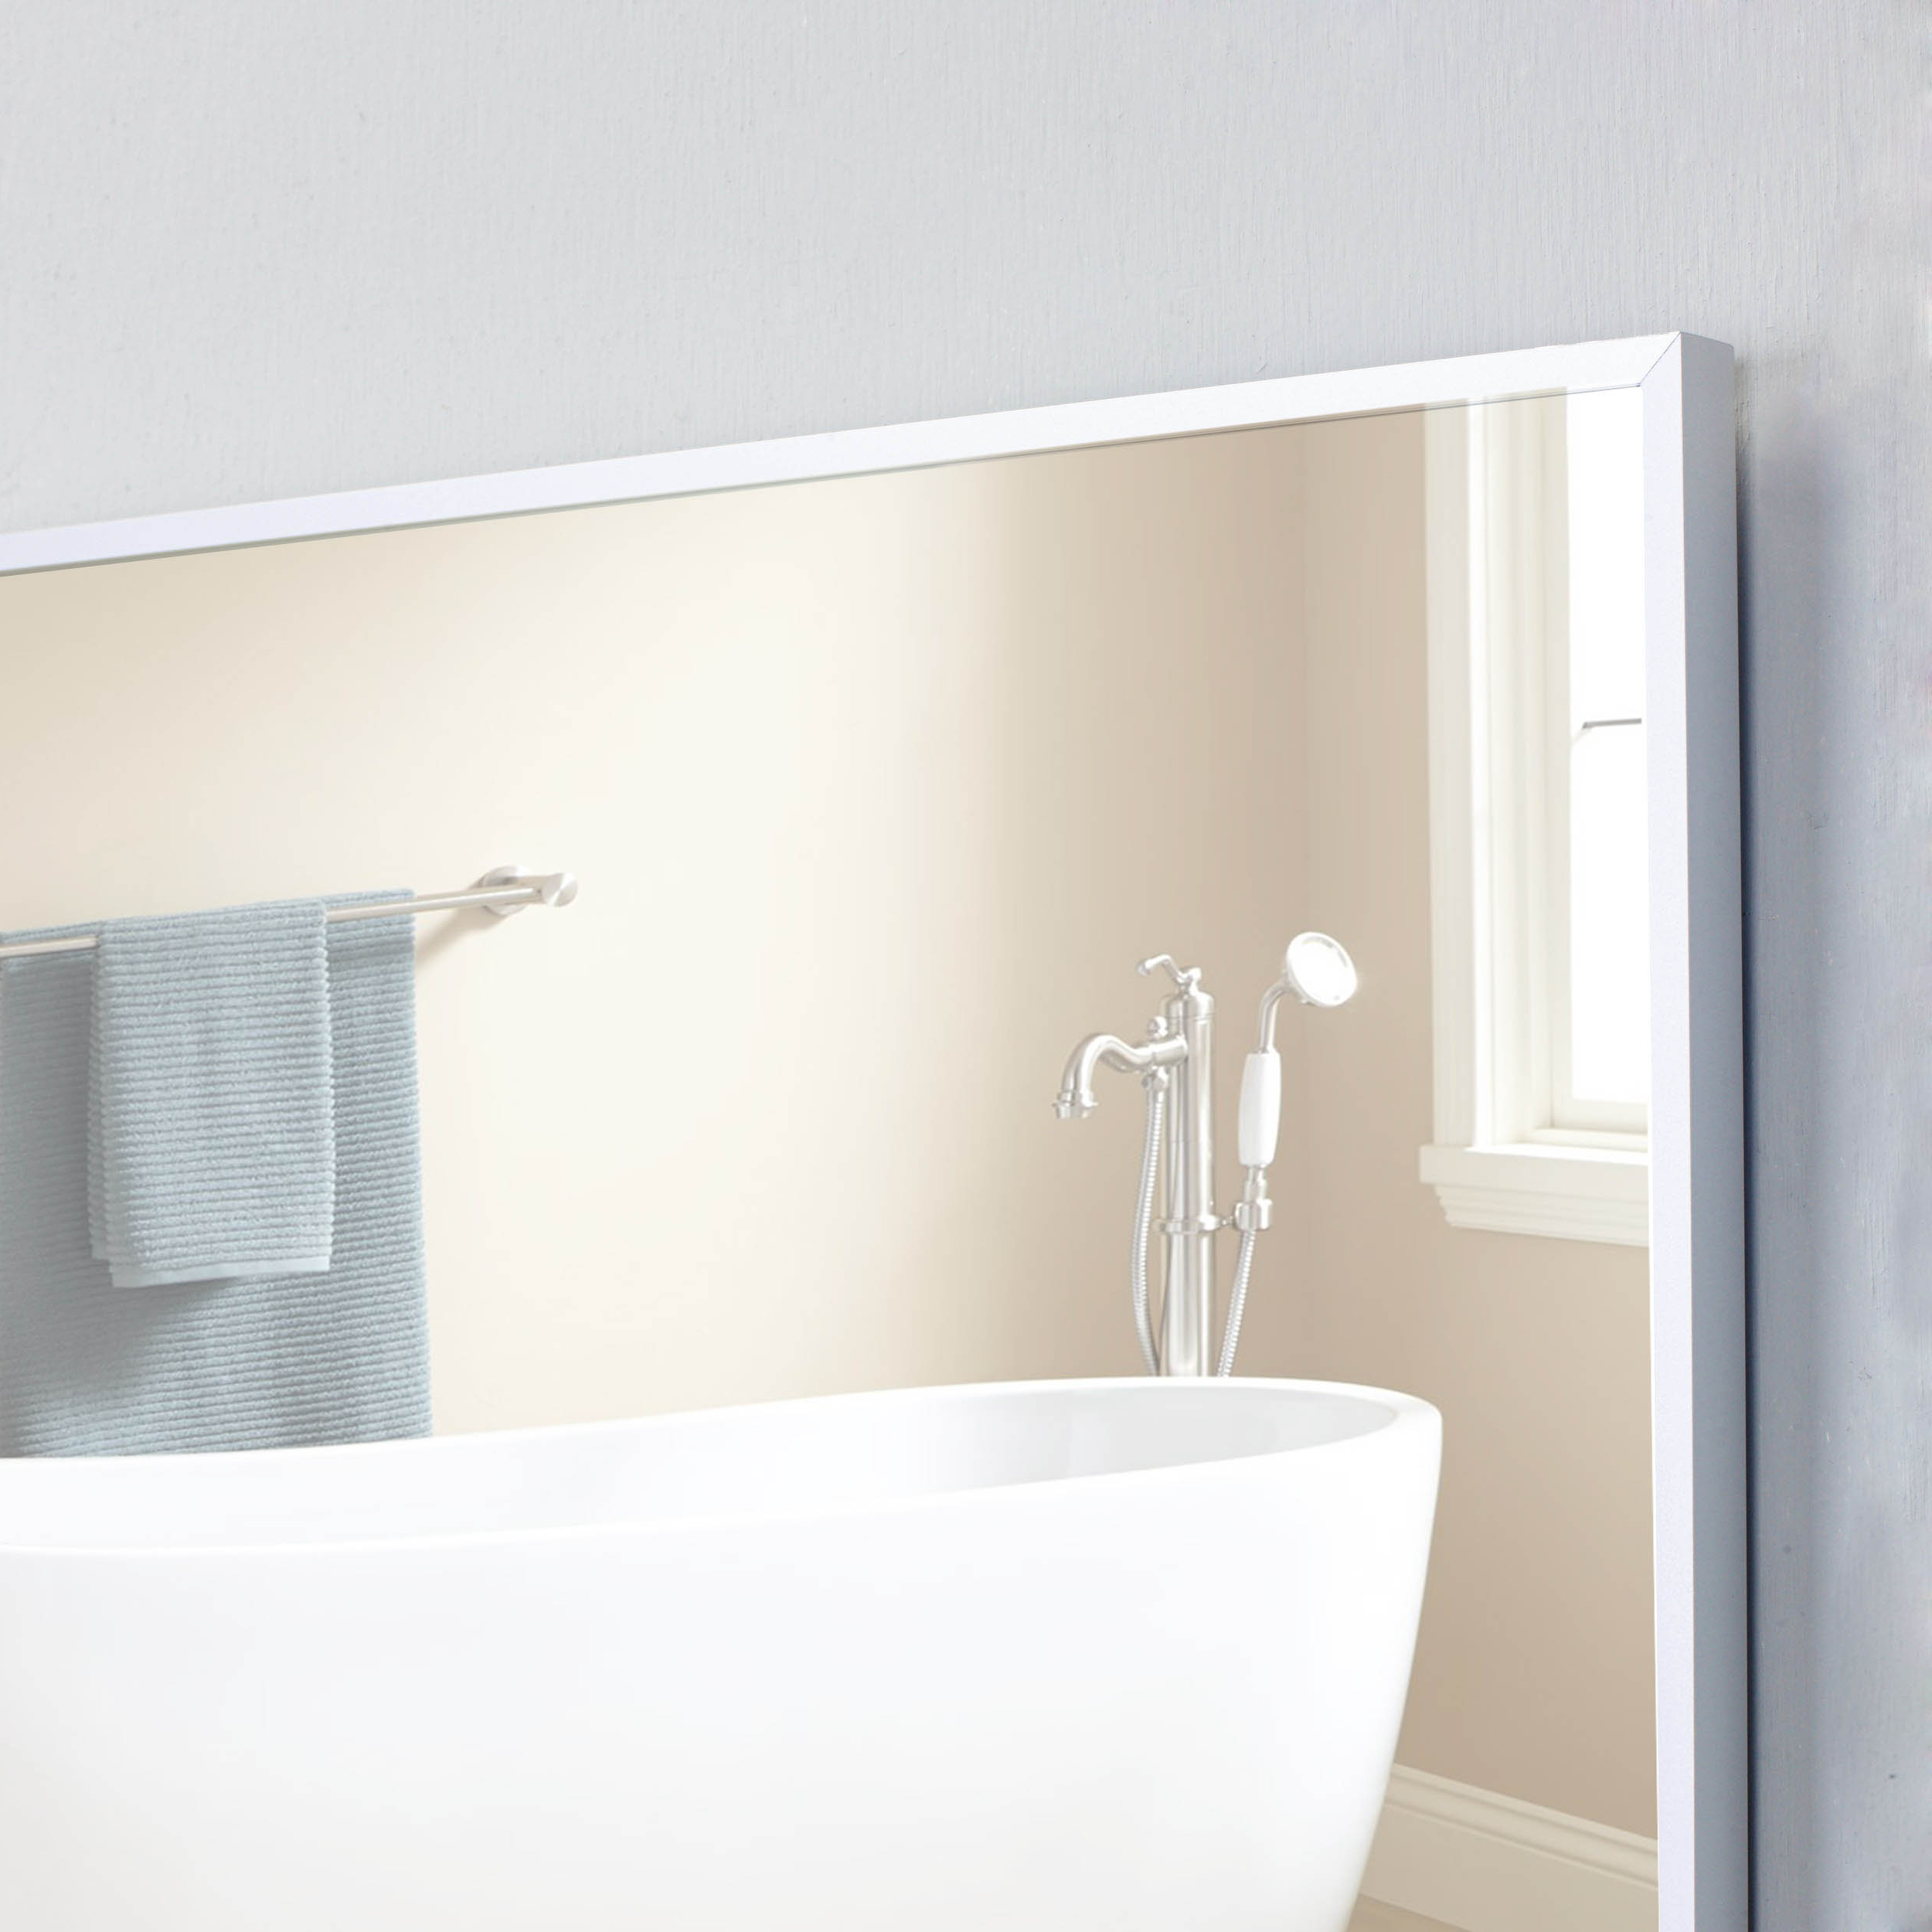 """Newest Frames For Bathroom Wall Mirrors With Regard To Eviva Sax 30"""" Brushed Metal Frame Bathroom Wall Mirror (Gallery 14 of 20)"""